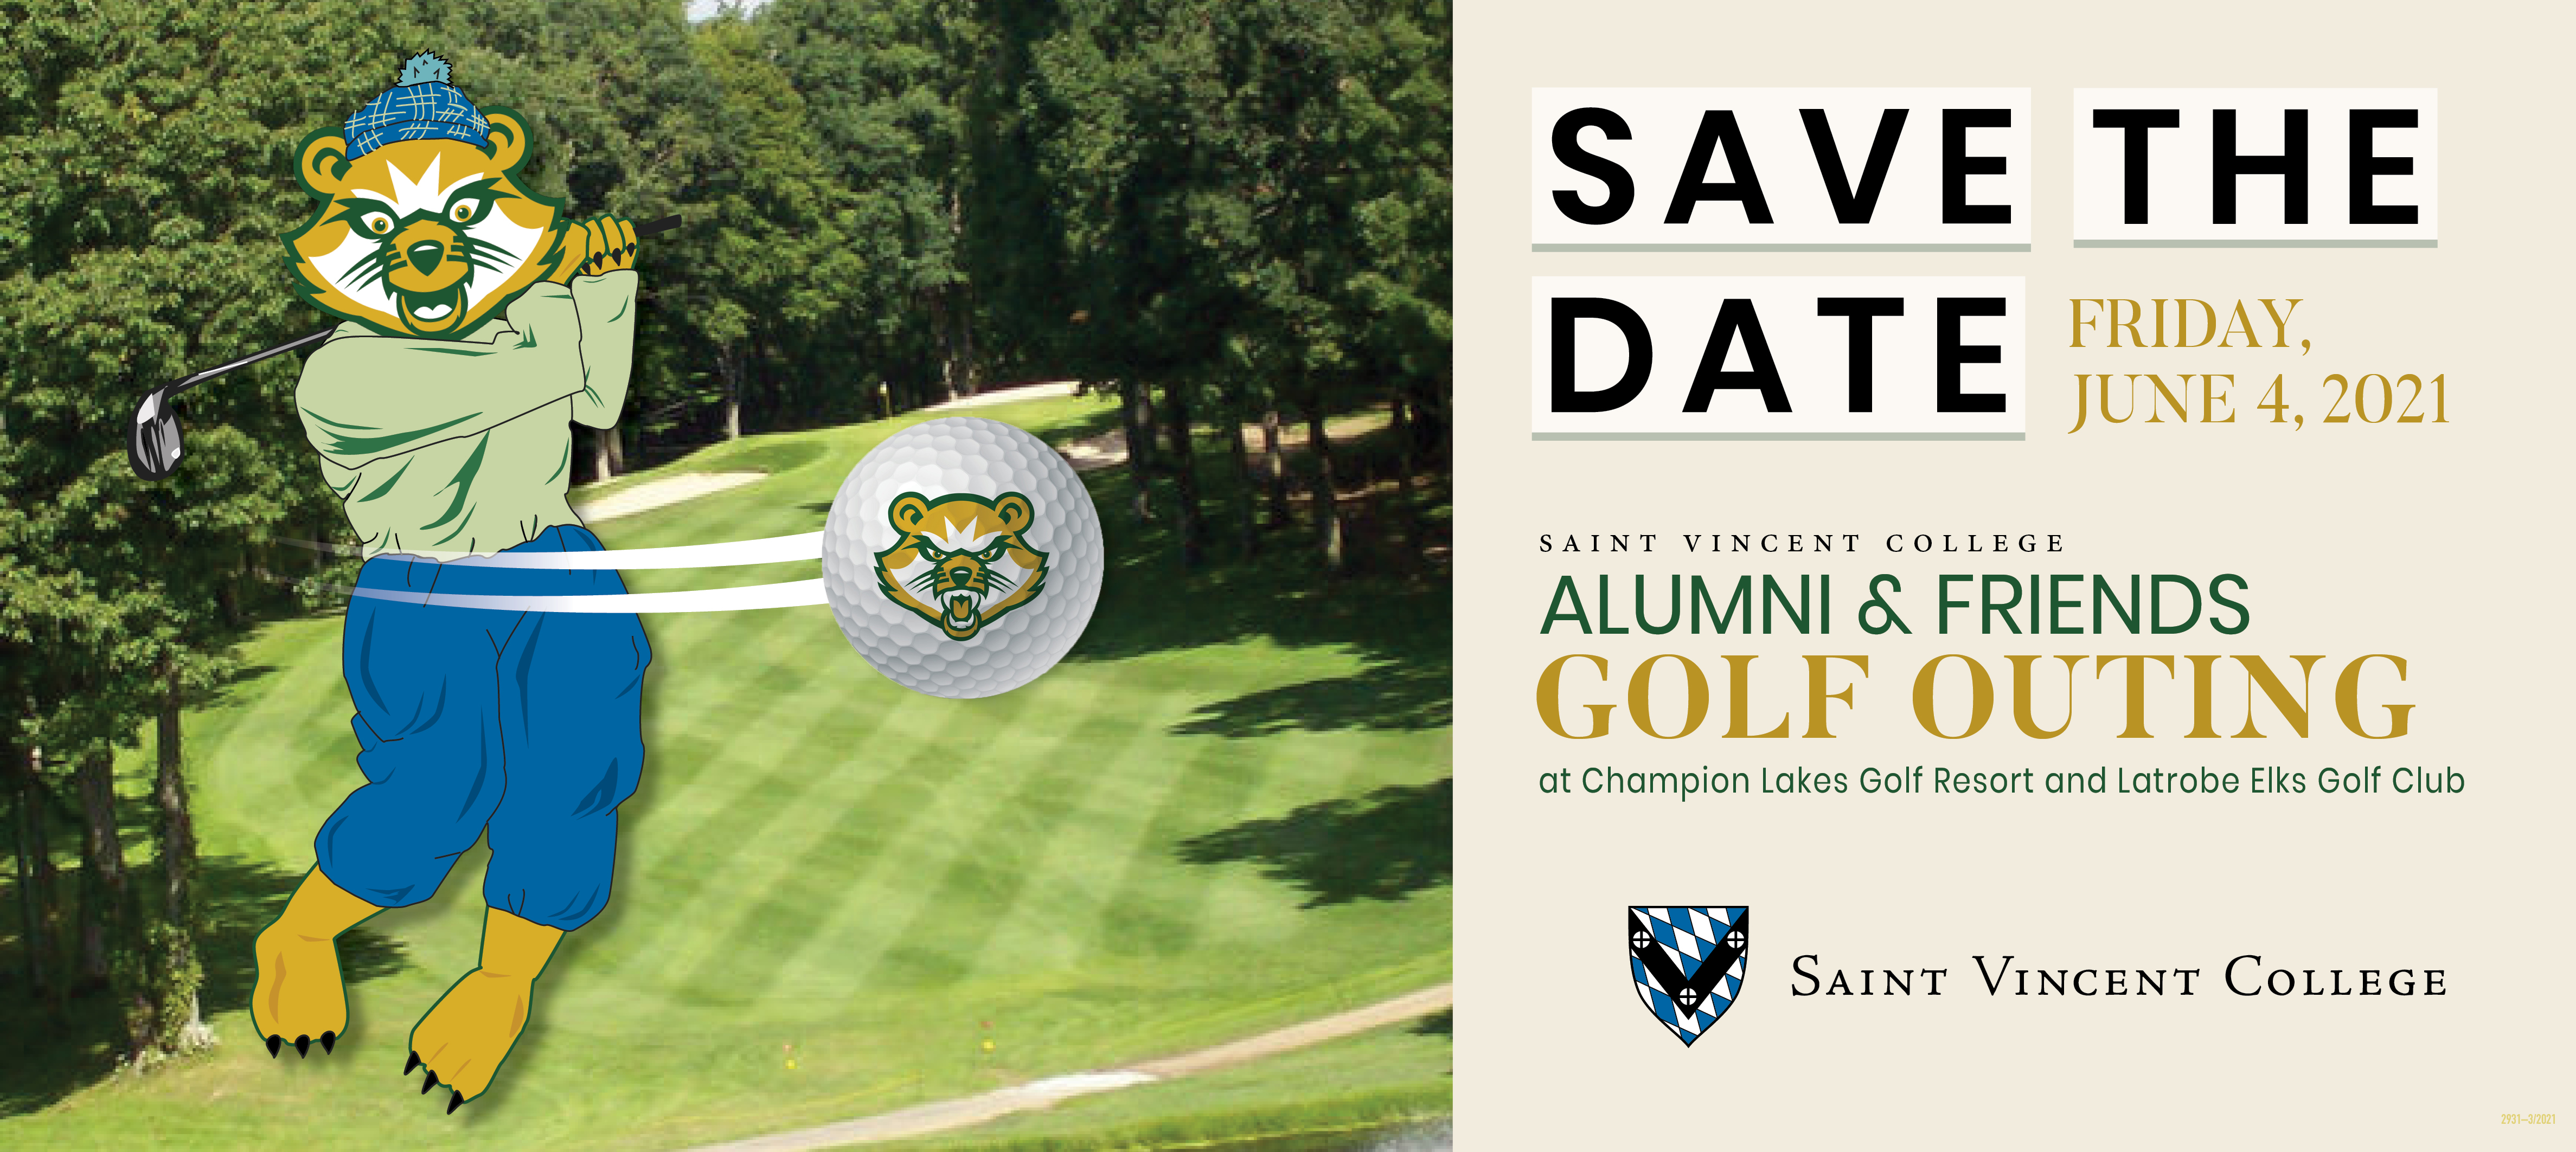 Alumni Friends Golf Outing Ad